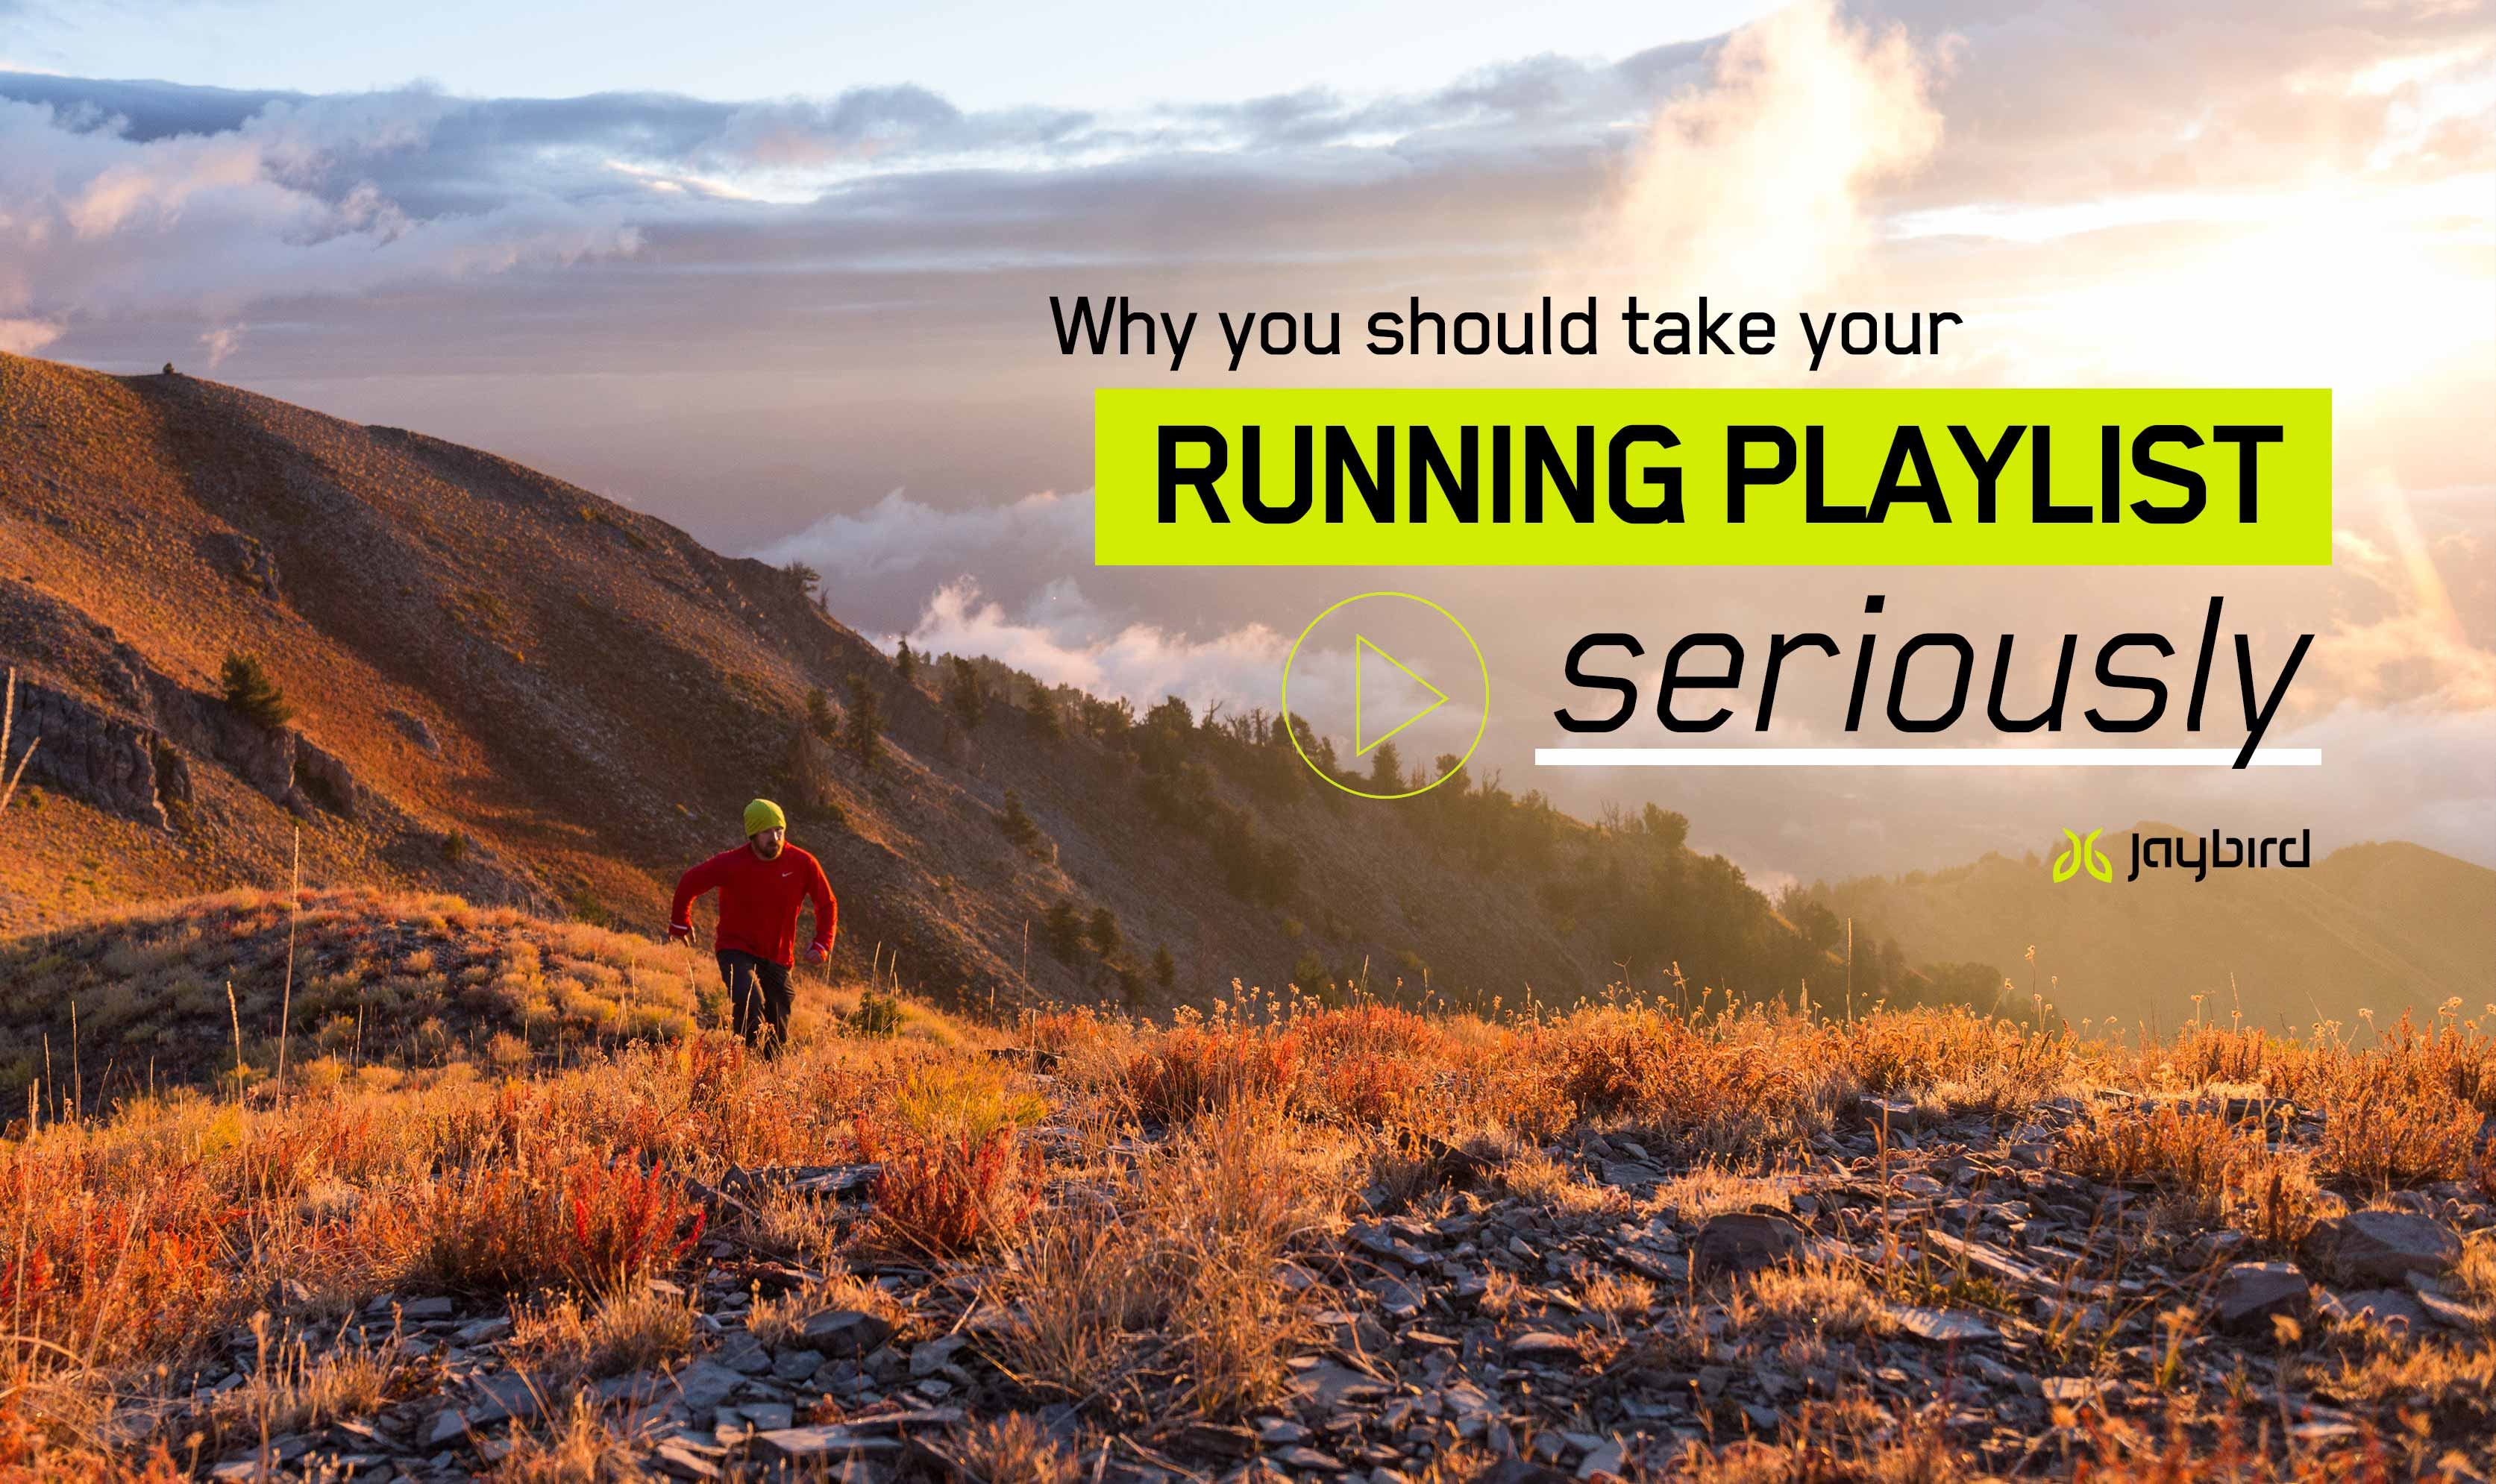 jaybird-sport-blog-why-you-should-take-your-running-playlist-seriously-image-20161219